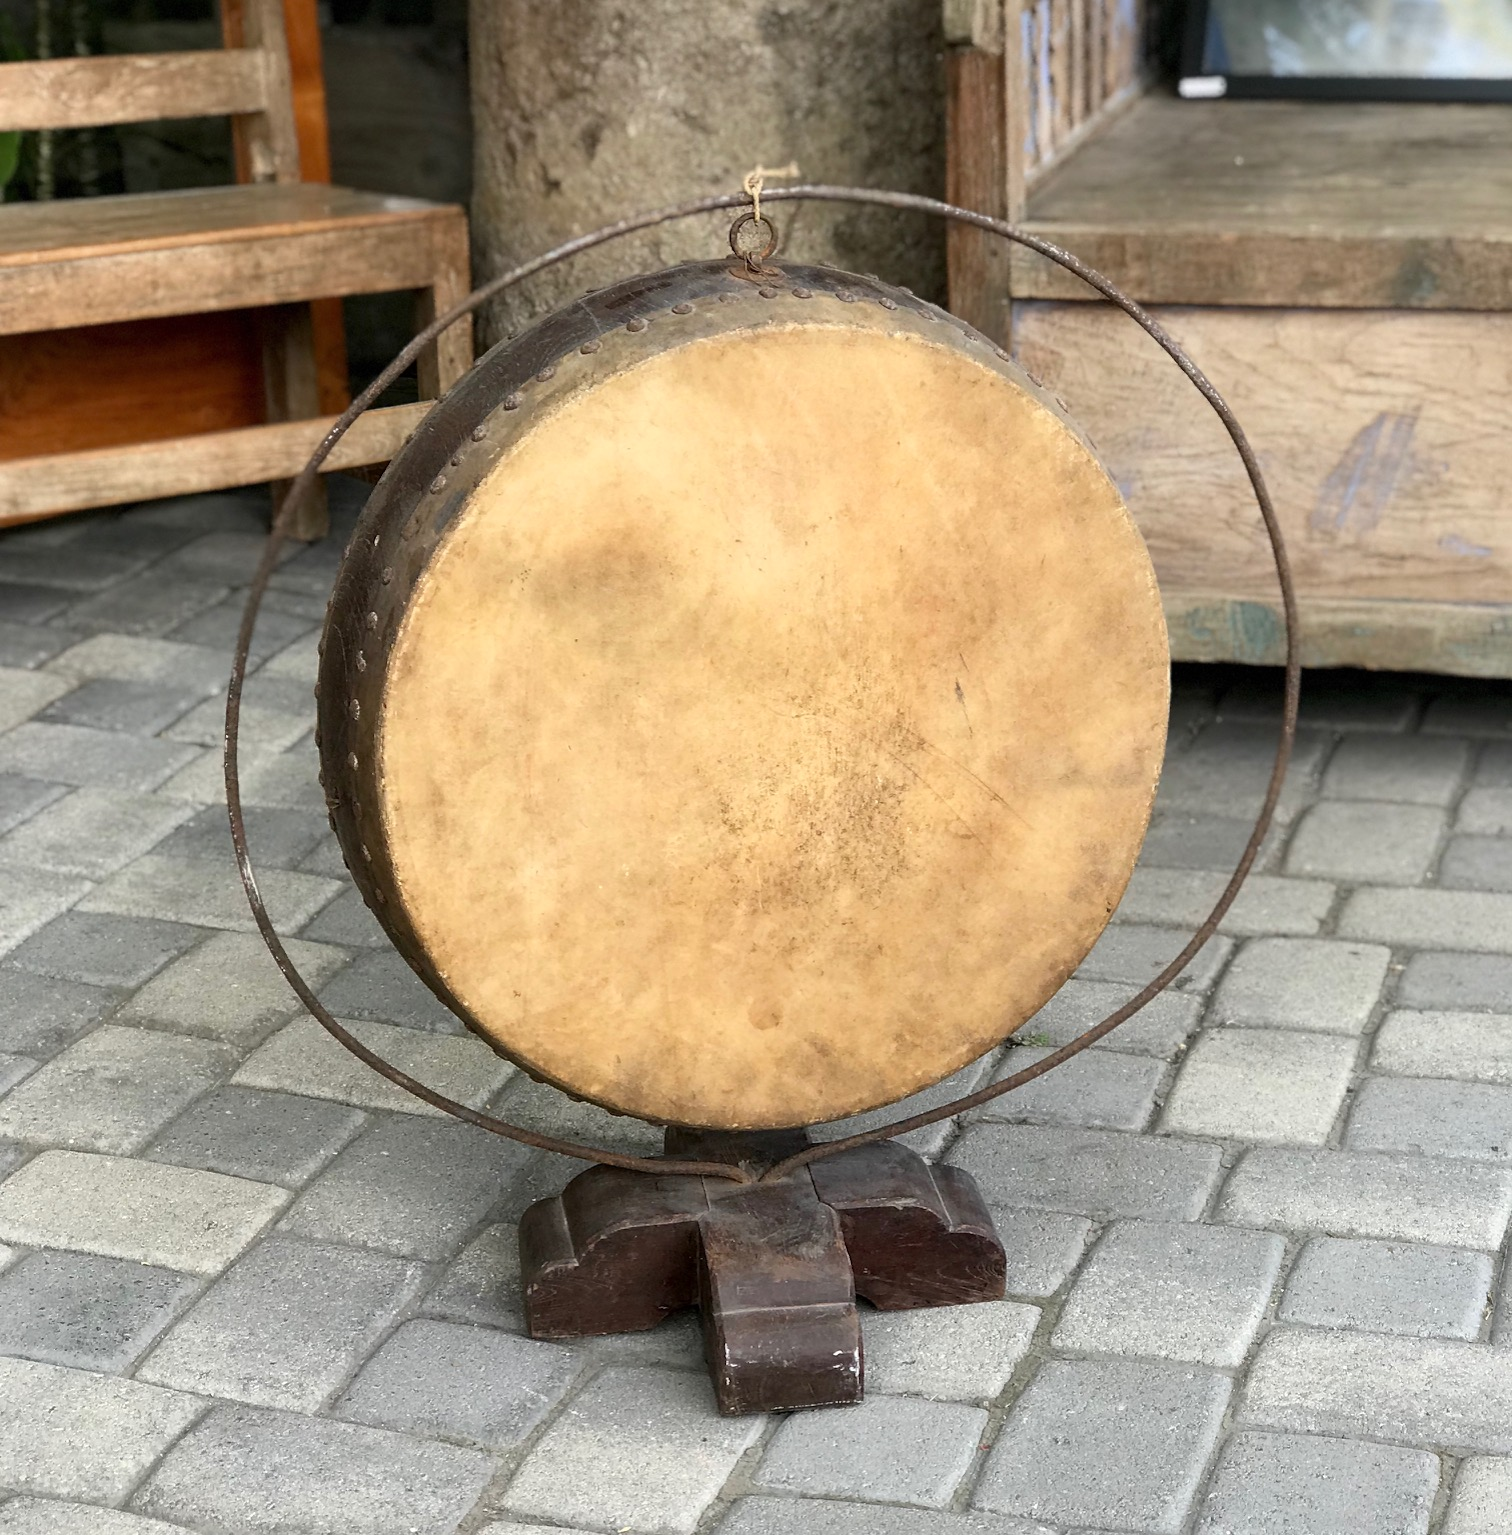 "Japanese Hanging Drum, wood and metal frame, rawhide skin tacked down. 21 1/2"" x 6"", (30"" x 27"" x 13"" with stand), $750.; thedavidalancollection.com , solana beach, ca"